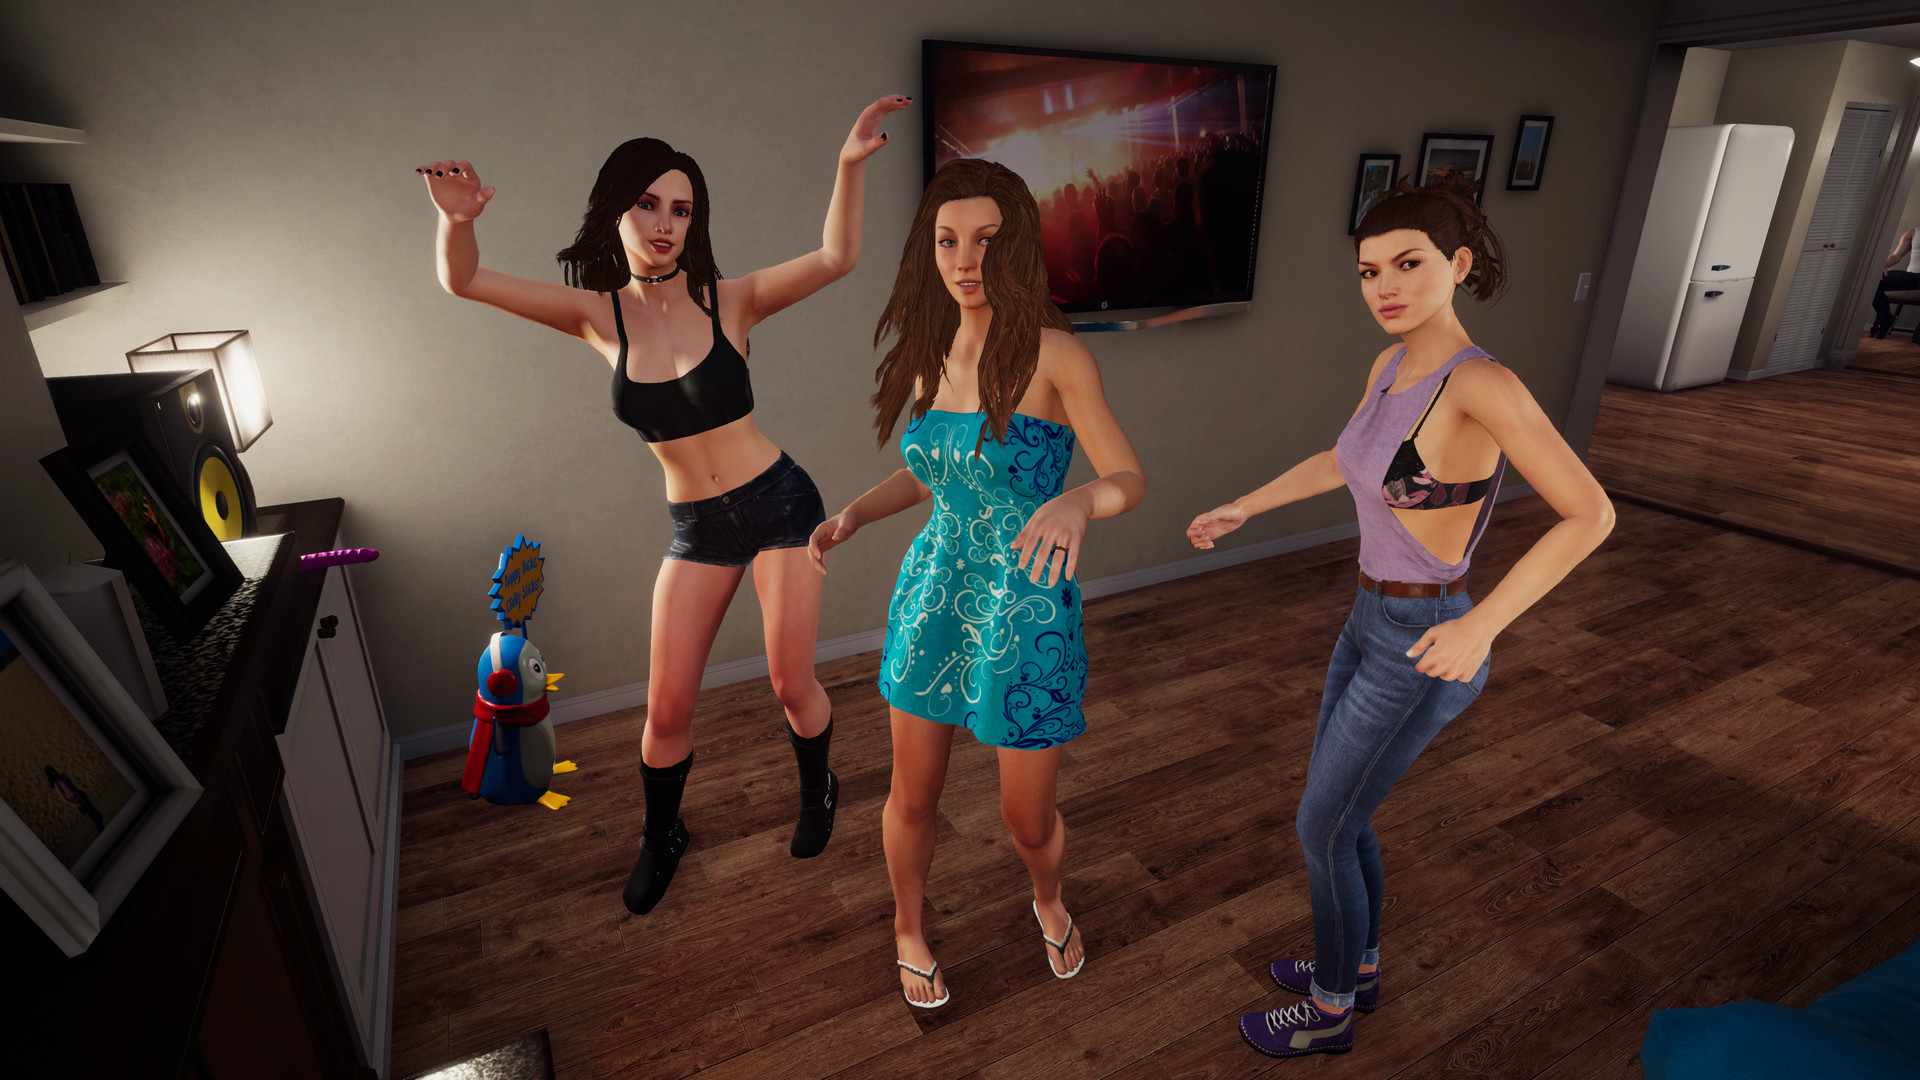 Naked party gams review